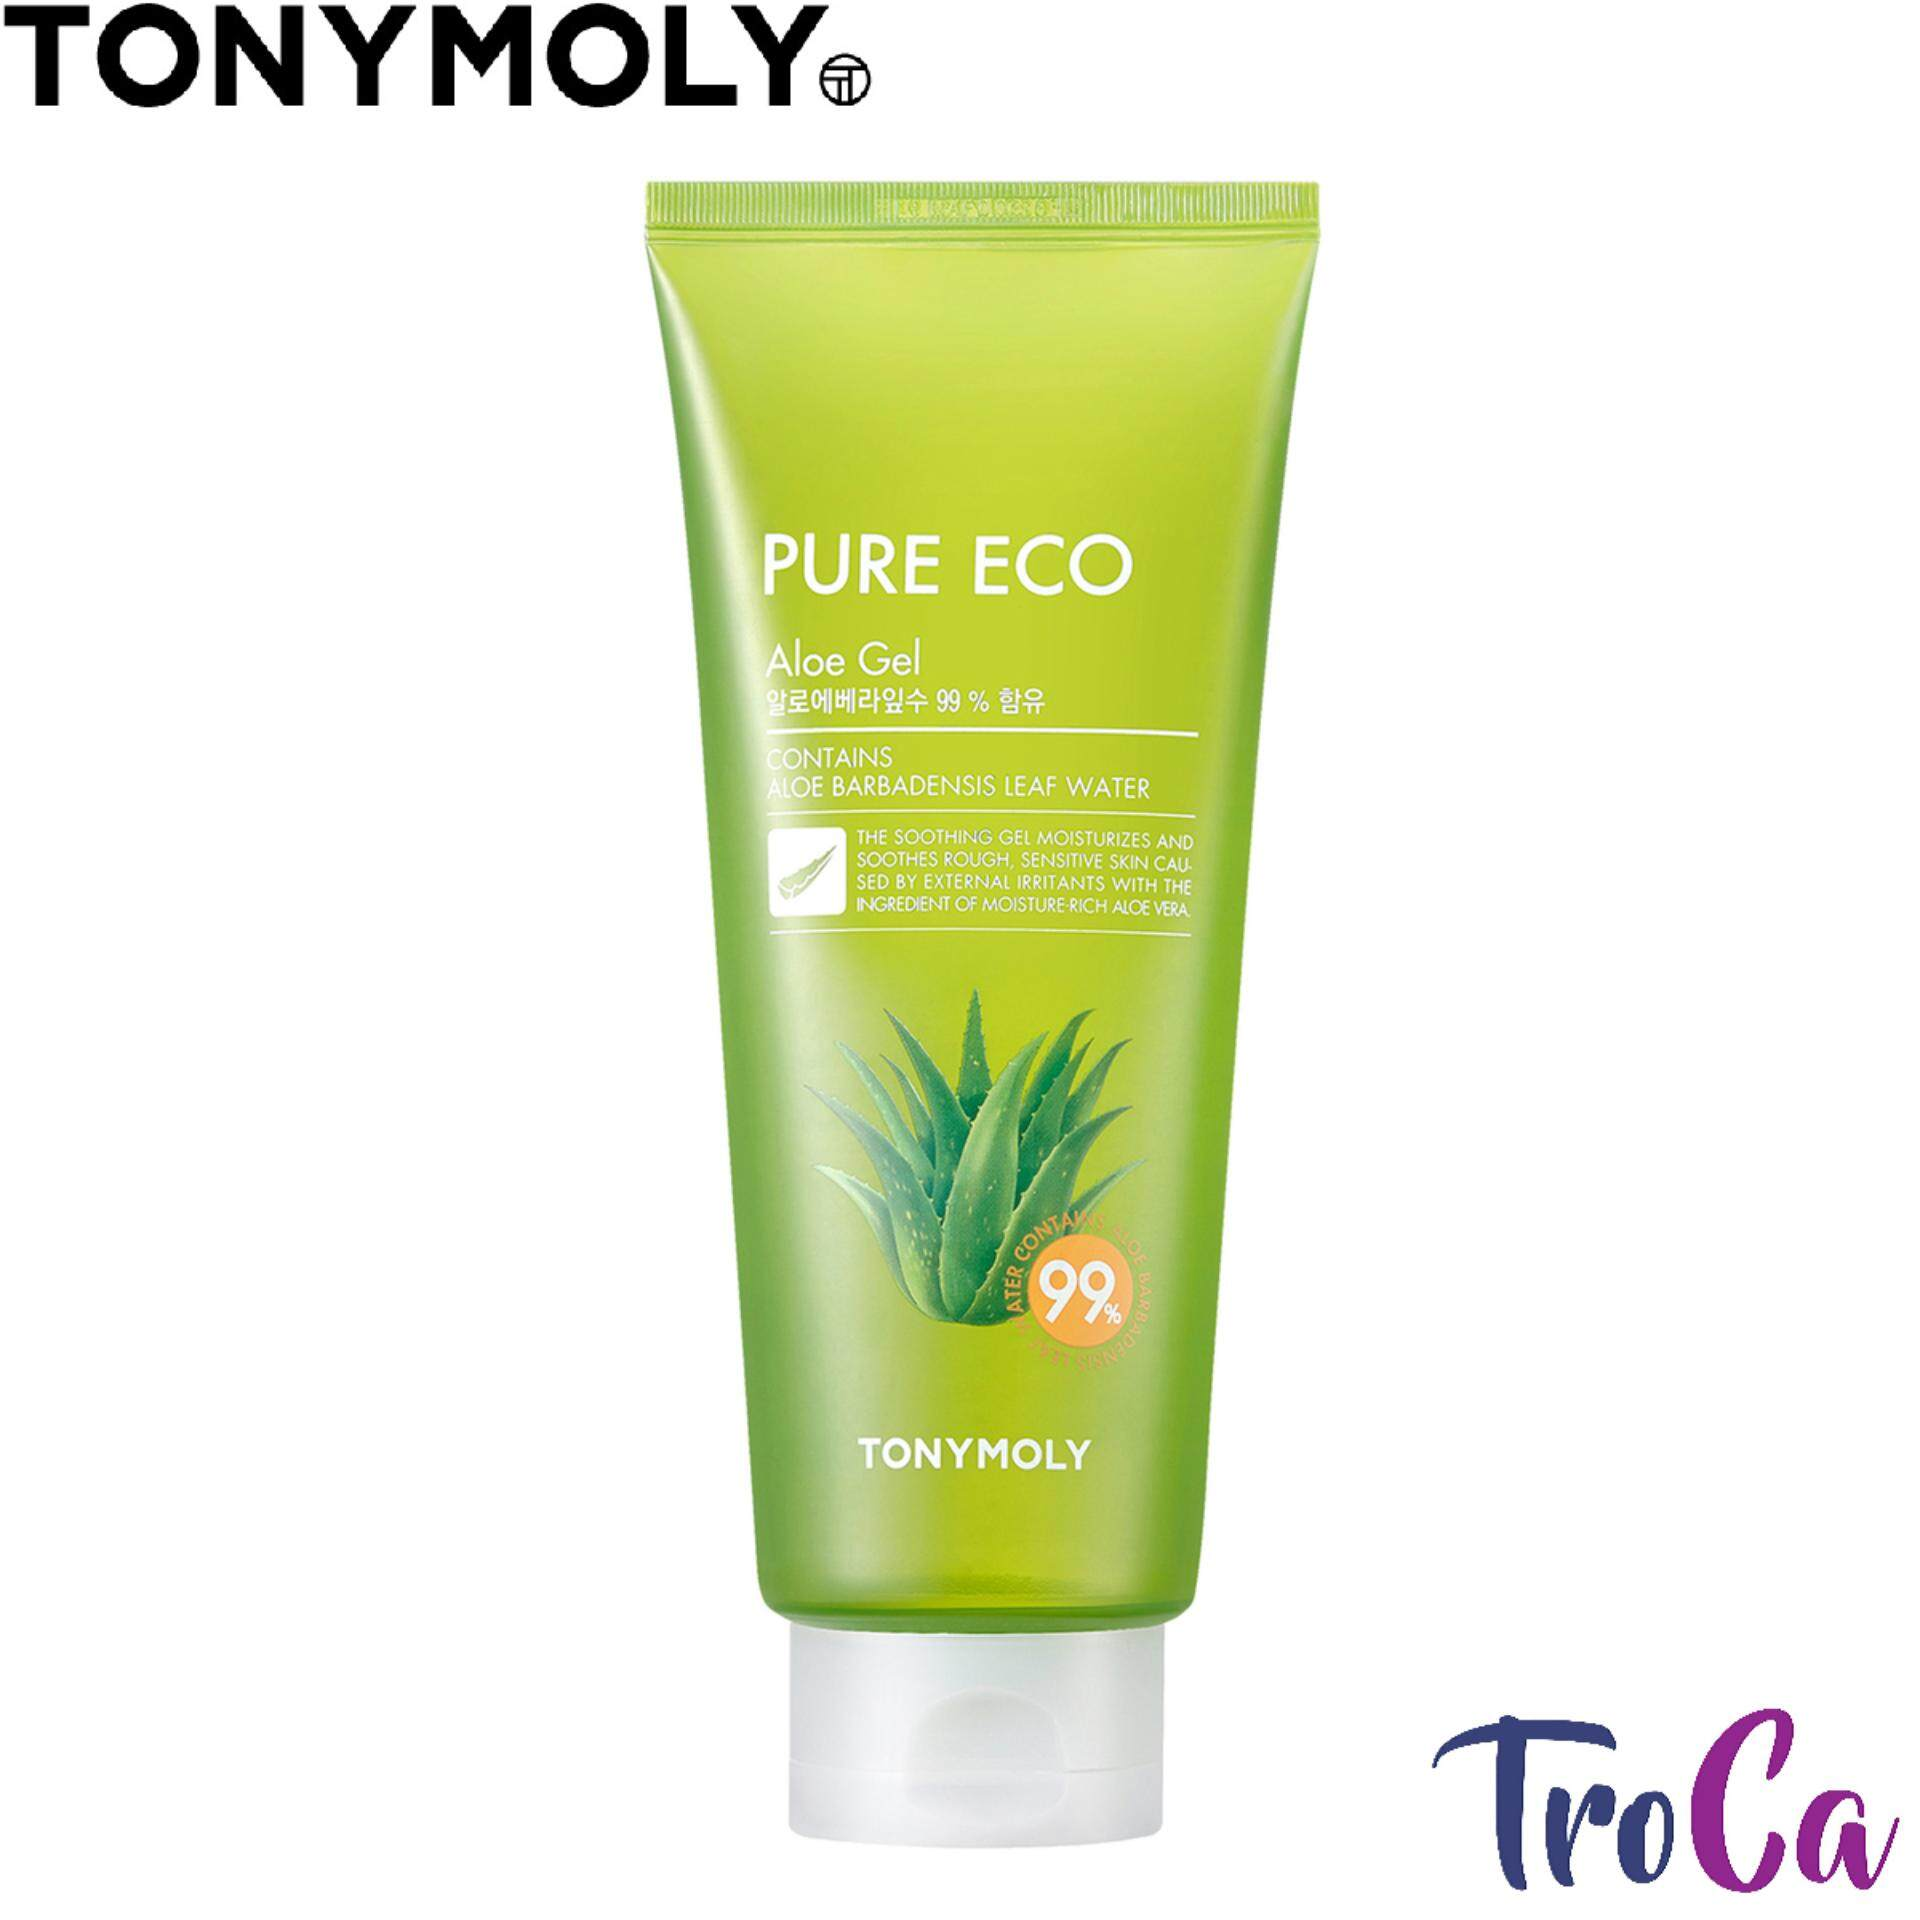 Lotion Cream And Scrubs Buy At Best 1 Get White Garden Hand Ampamp Body Pink Rose 250ml Tony Moly Tonymoly Pure Eco Aloe Gel Care Moisturizer